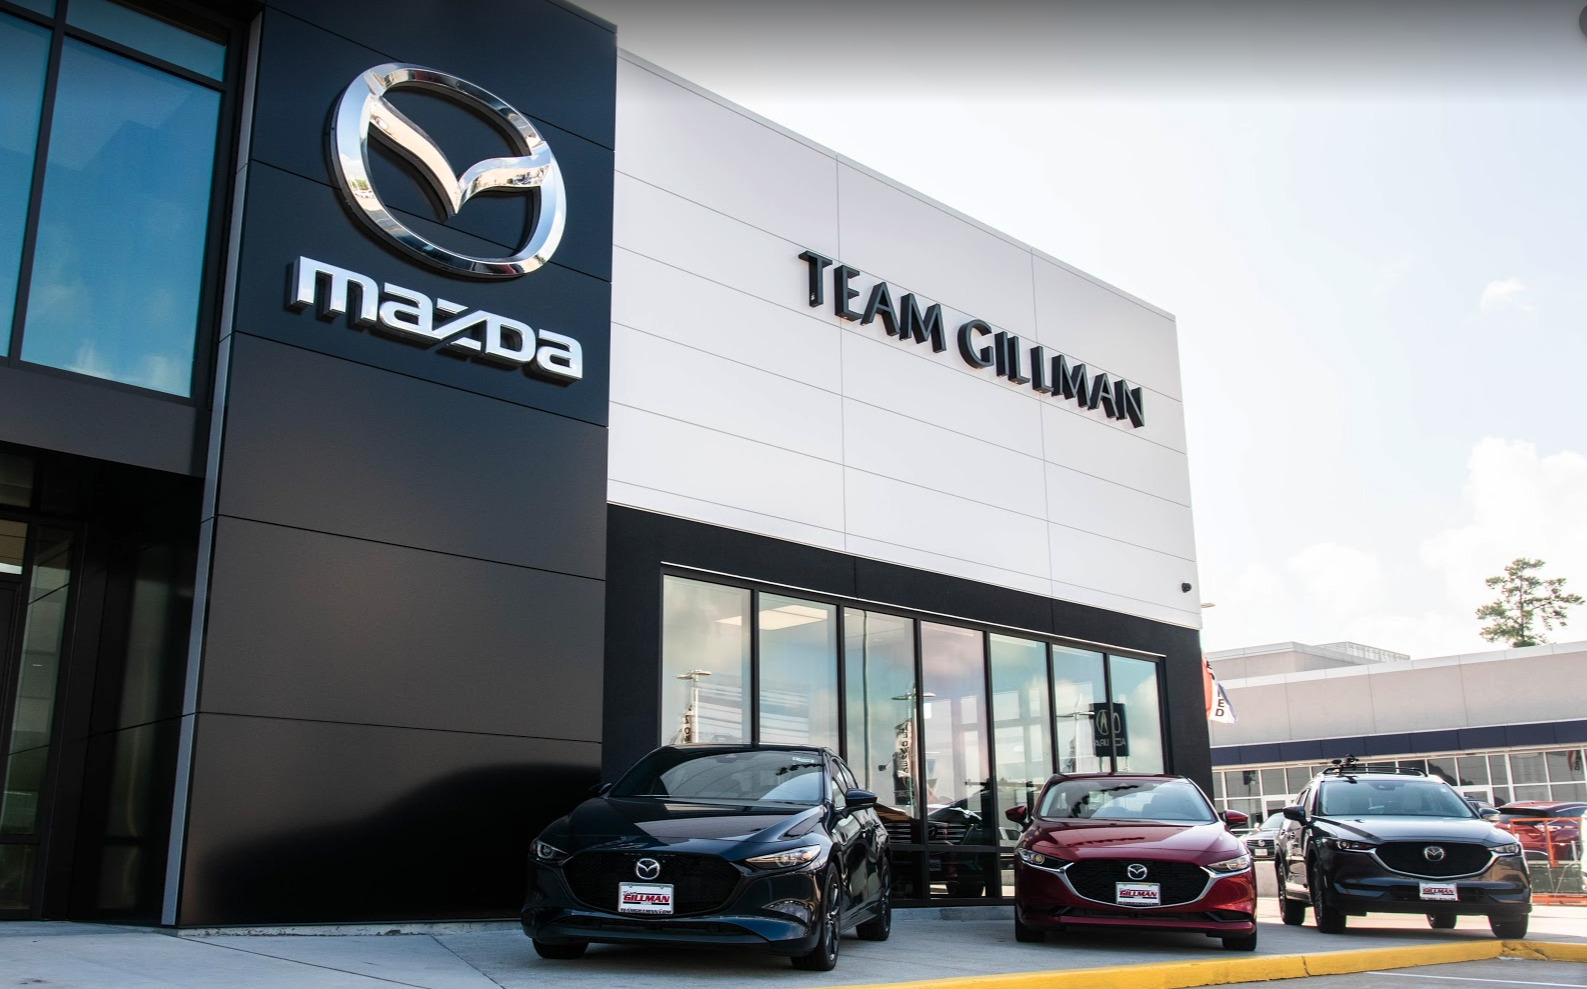 Team Gillman Mazda Find Hours & Directions